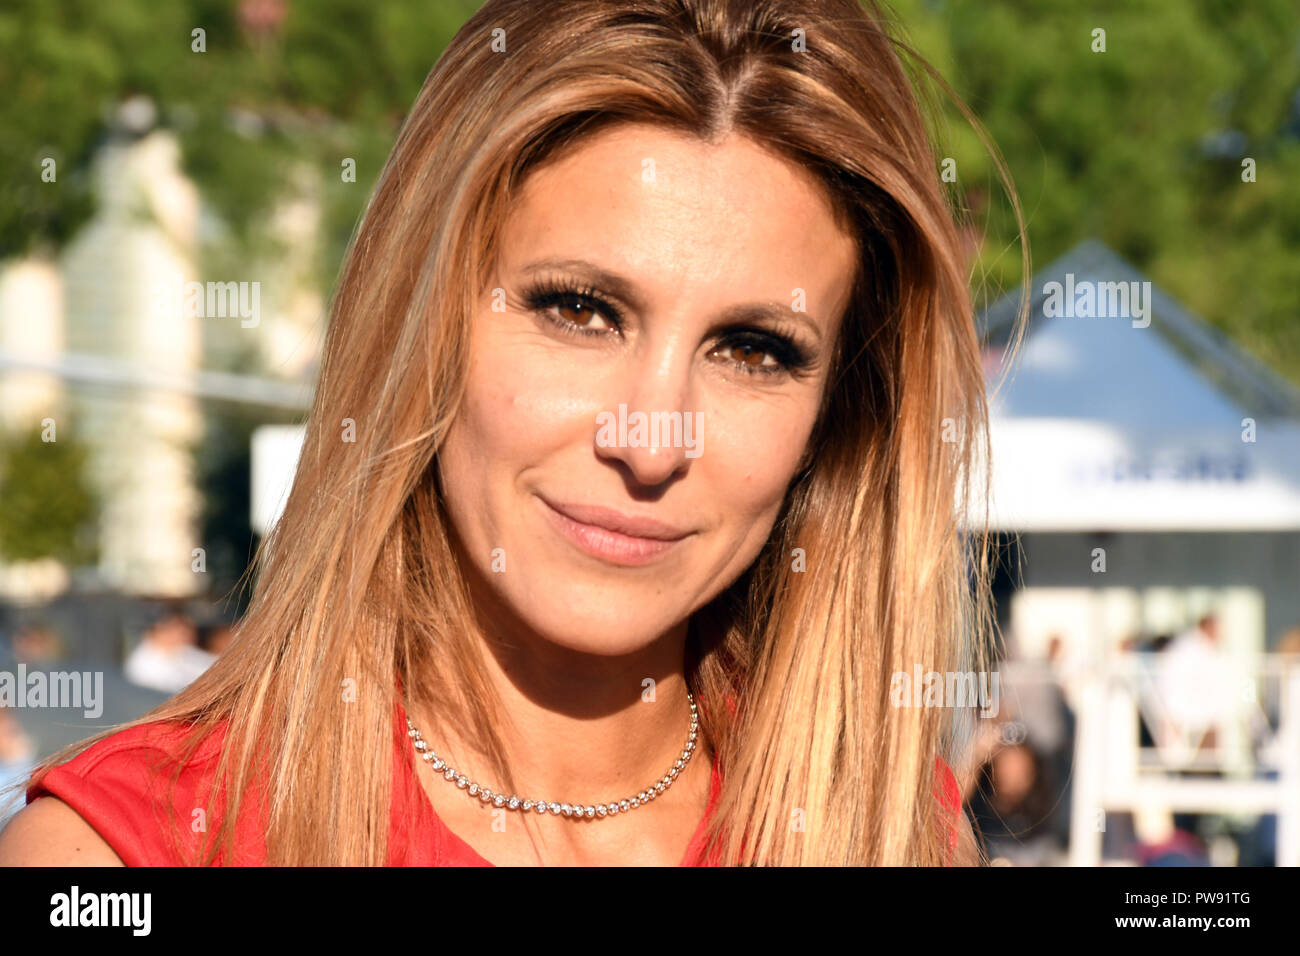 Adriana Volpe High Resolution Stock Photography And Images Alamy